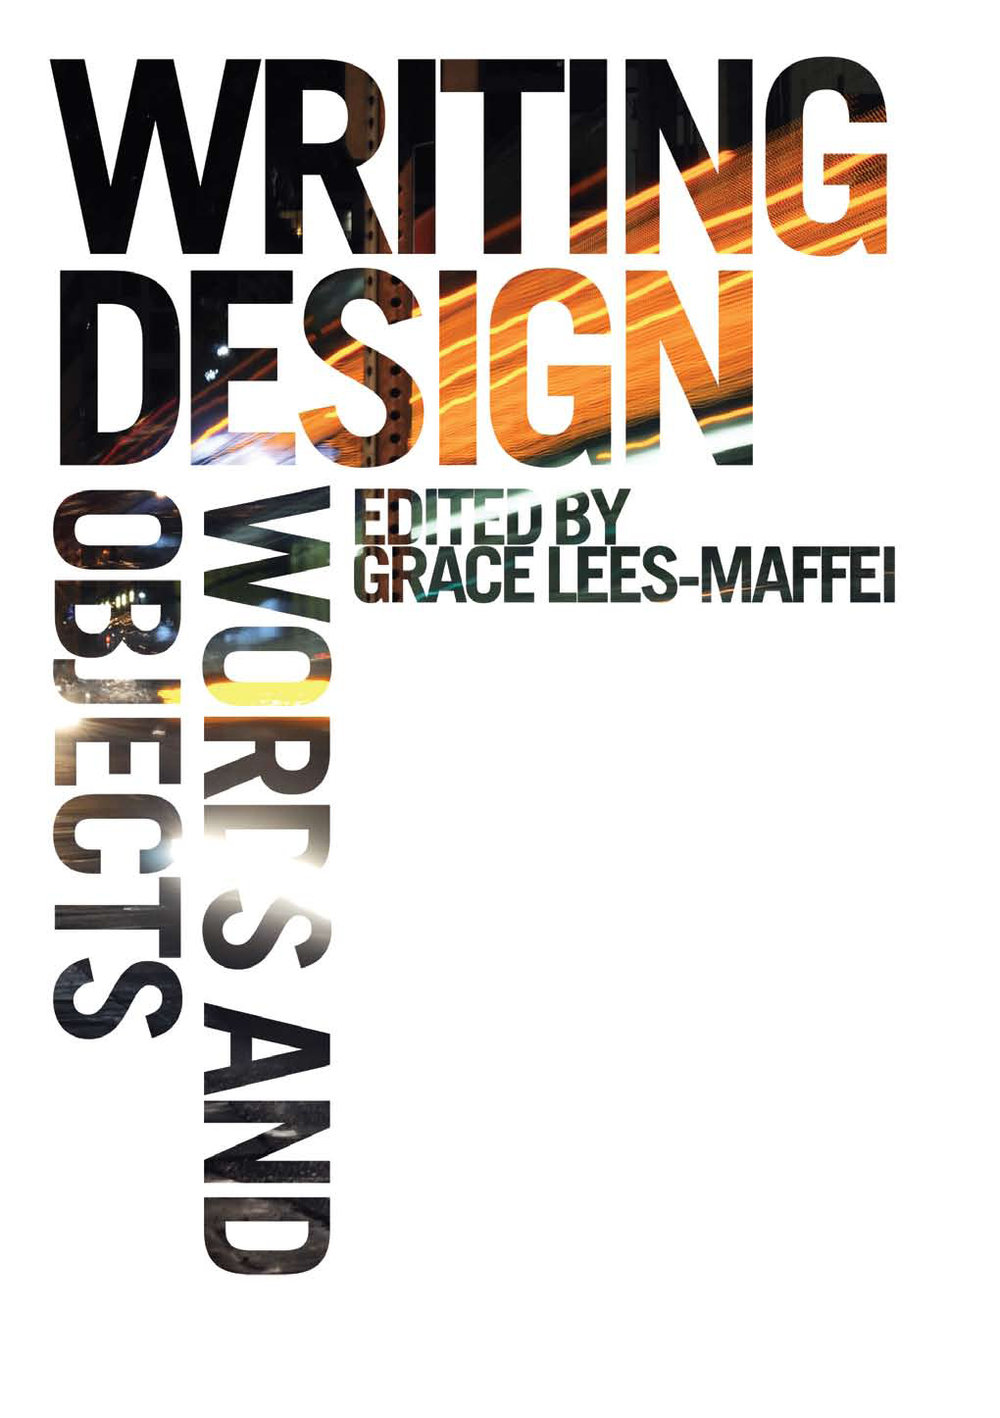 Writing Design - Words and Objects. Edited by Grace Lees-Maffei. London: Berg, 2012.